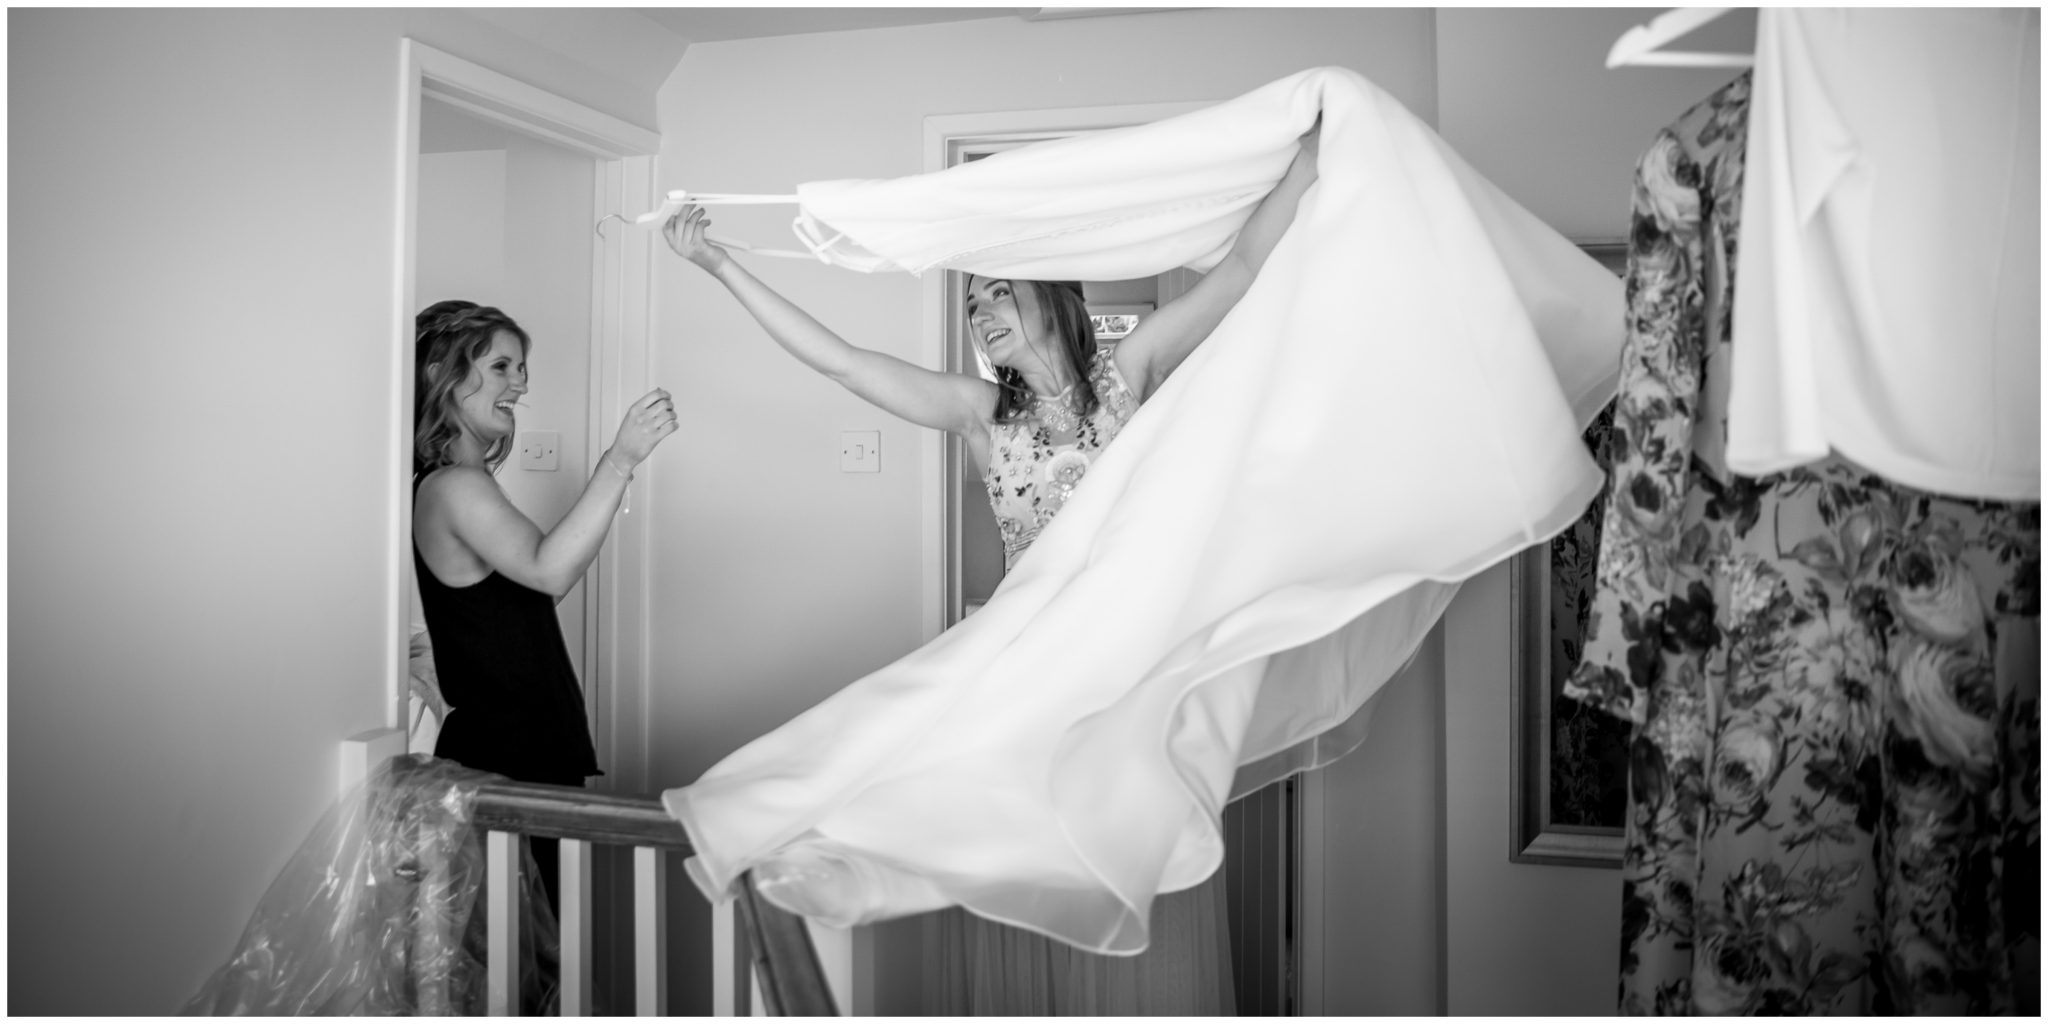 Bride's sister gets wedding dress ready